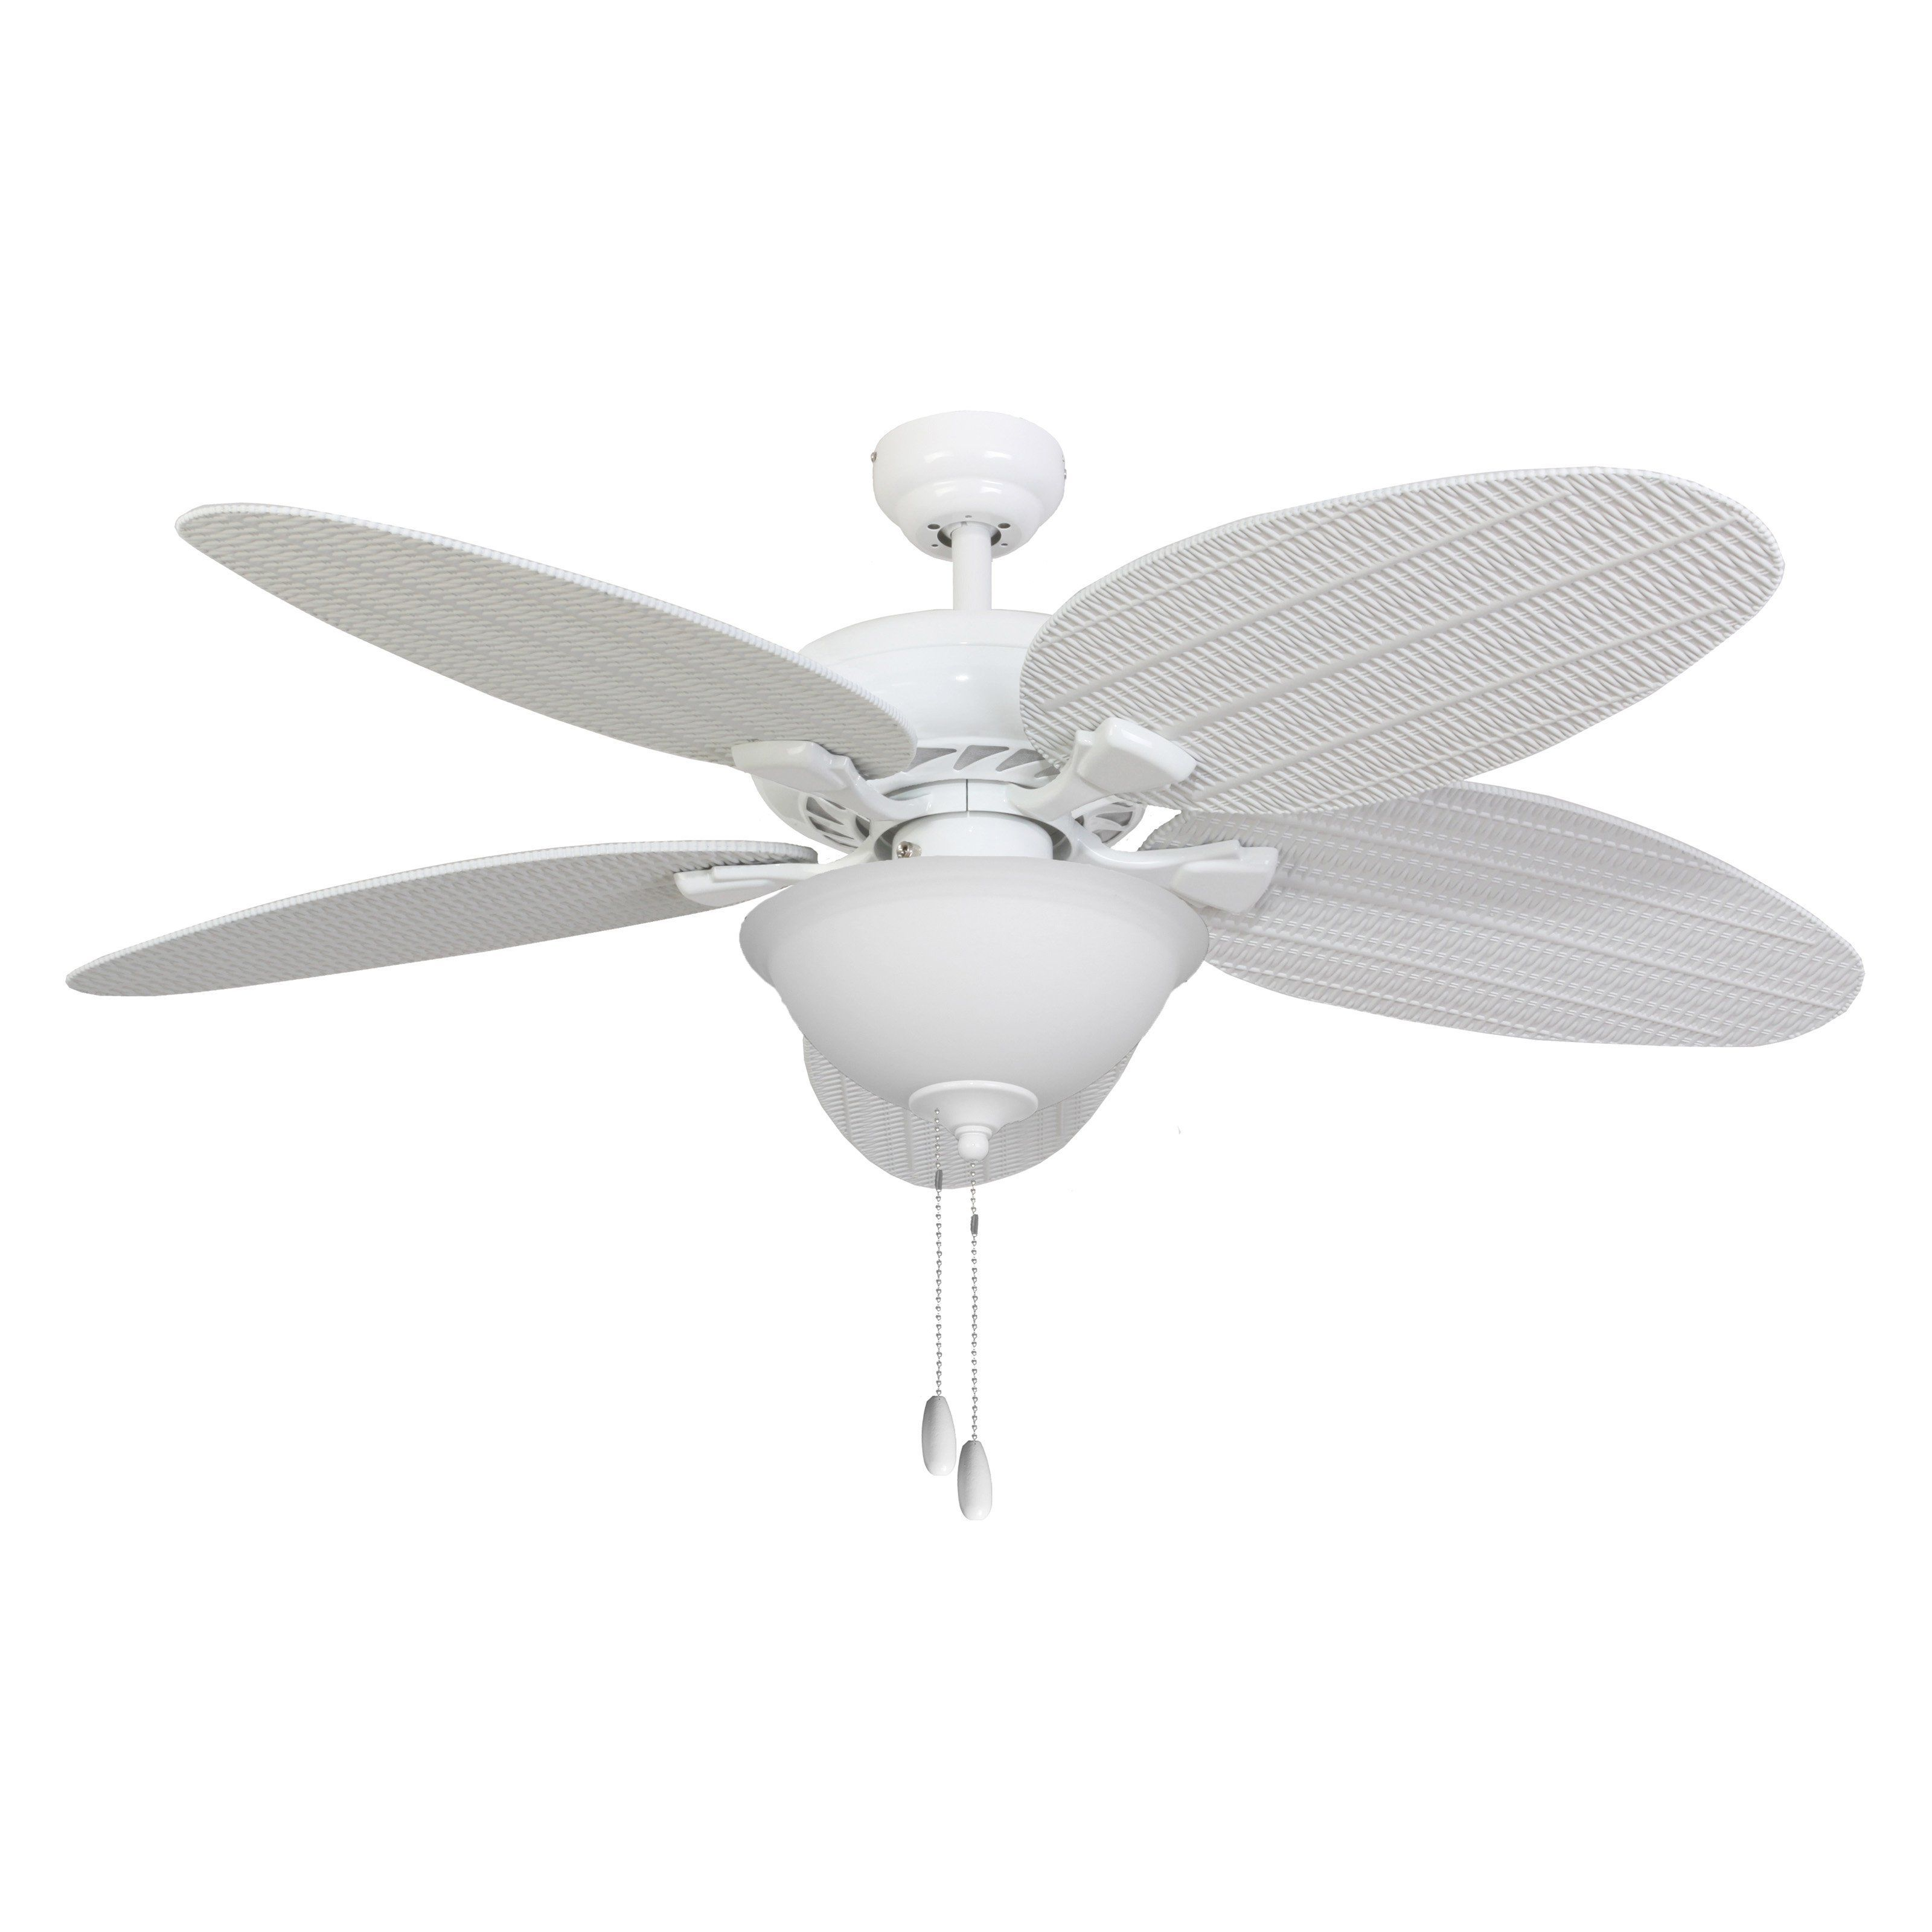 Prominence Home Boca Grande 52 in Indoor Ceiling Fan with Light